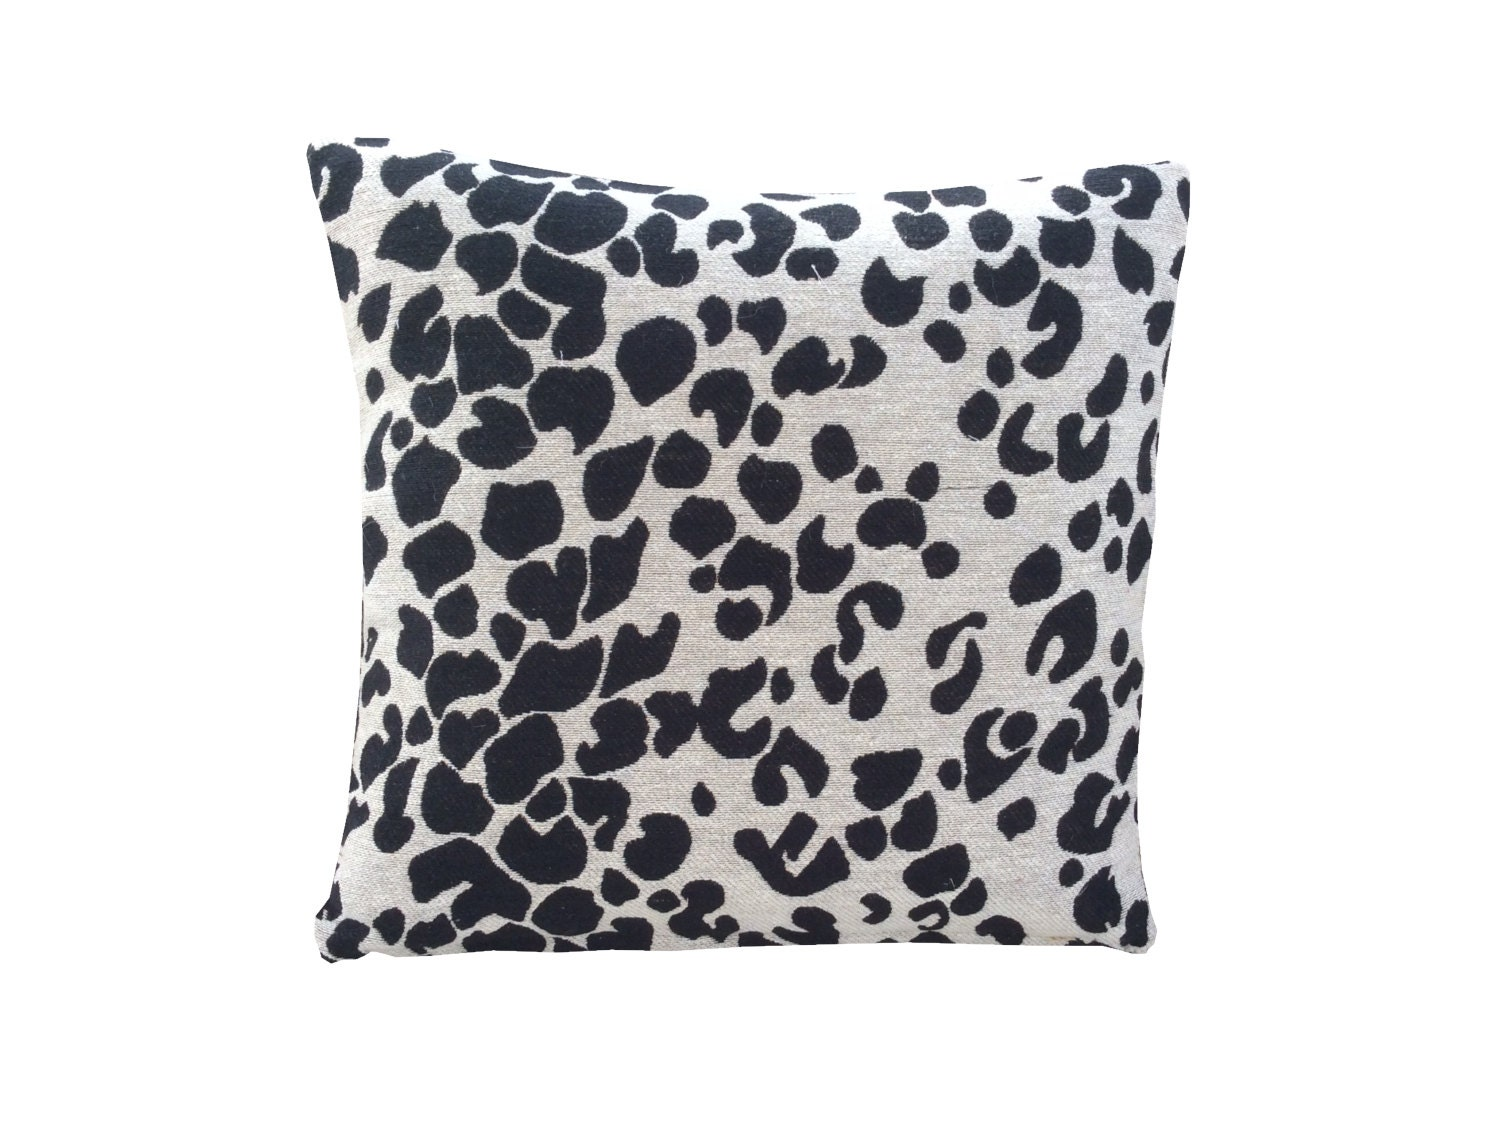 Stunning beige  black spotted animal print hand made pillow case cushion cover made from chenille interior fabric HomeSofaLoungeKitchen